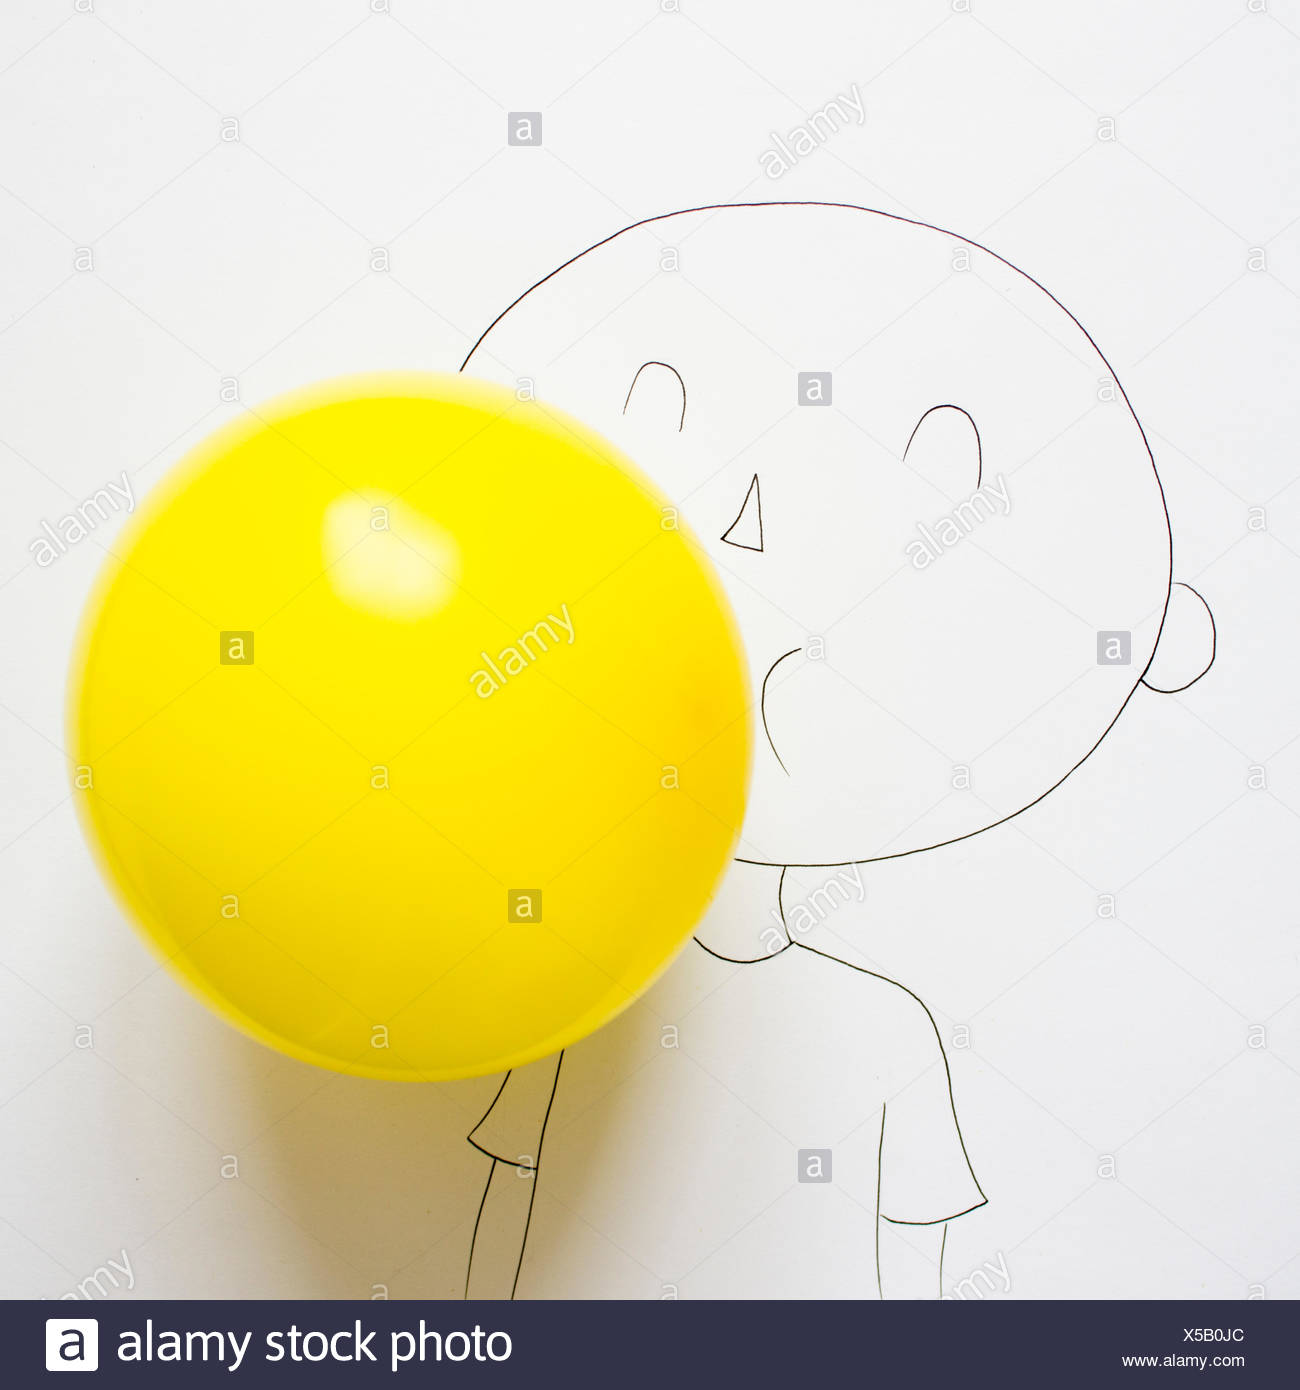 Conceptual drawing of a boy blowing up a balloon - Stock Image